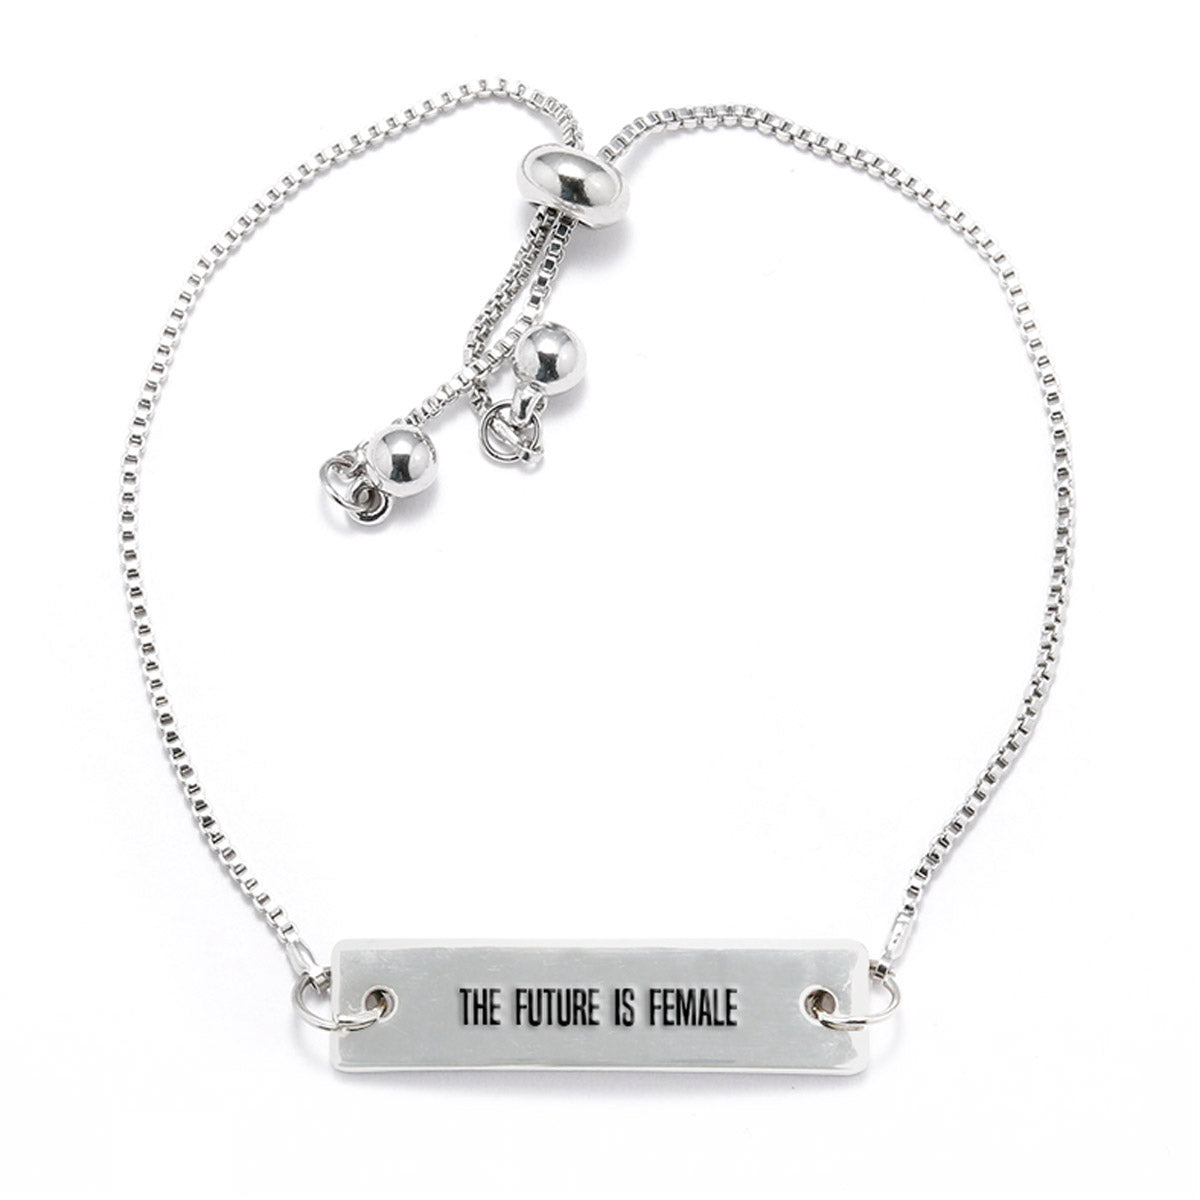 The Future is Female Silver Bar Adjustable Bracelet